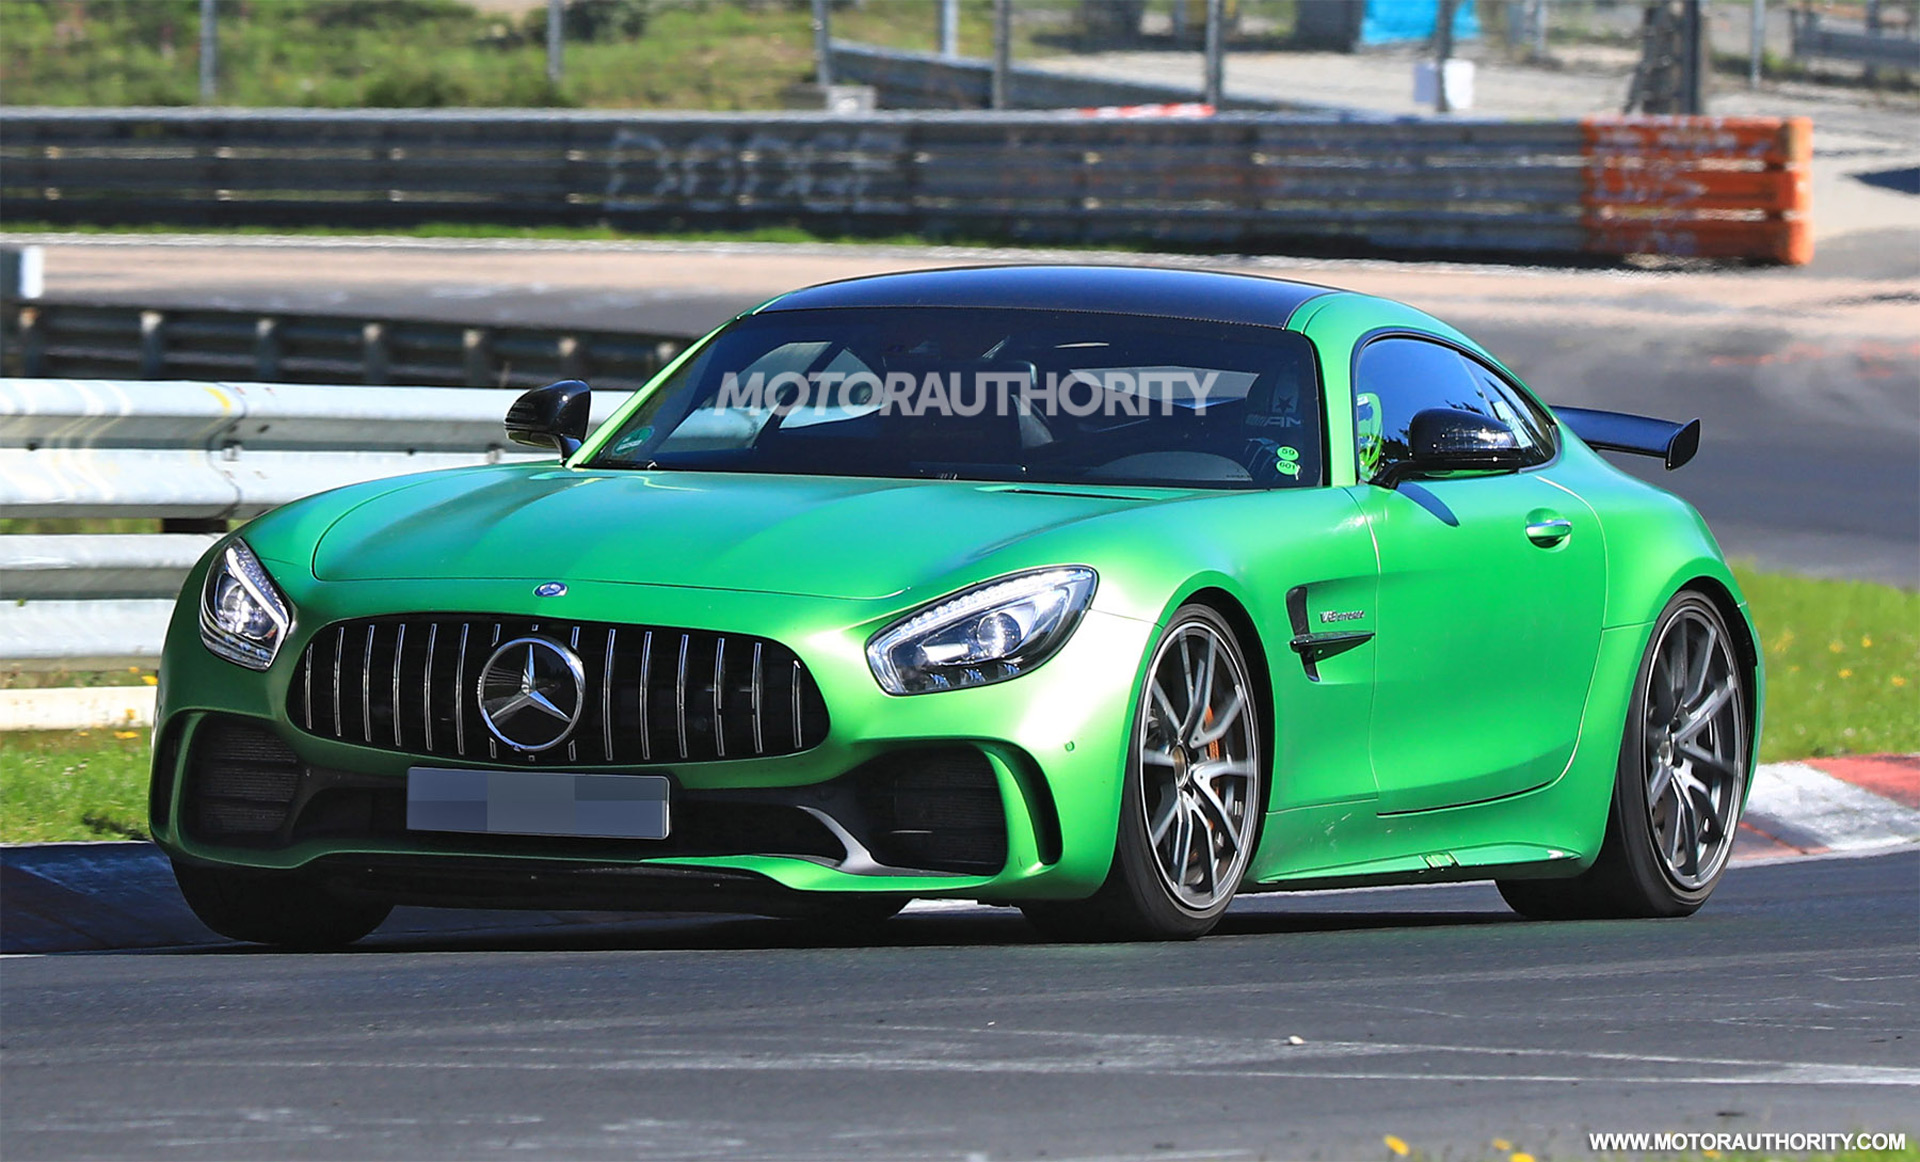 2019 mercedes amg gt black series spy shots and video. Black Bedroom Furniture Sets. Home Design Ideas